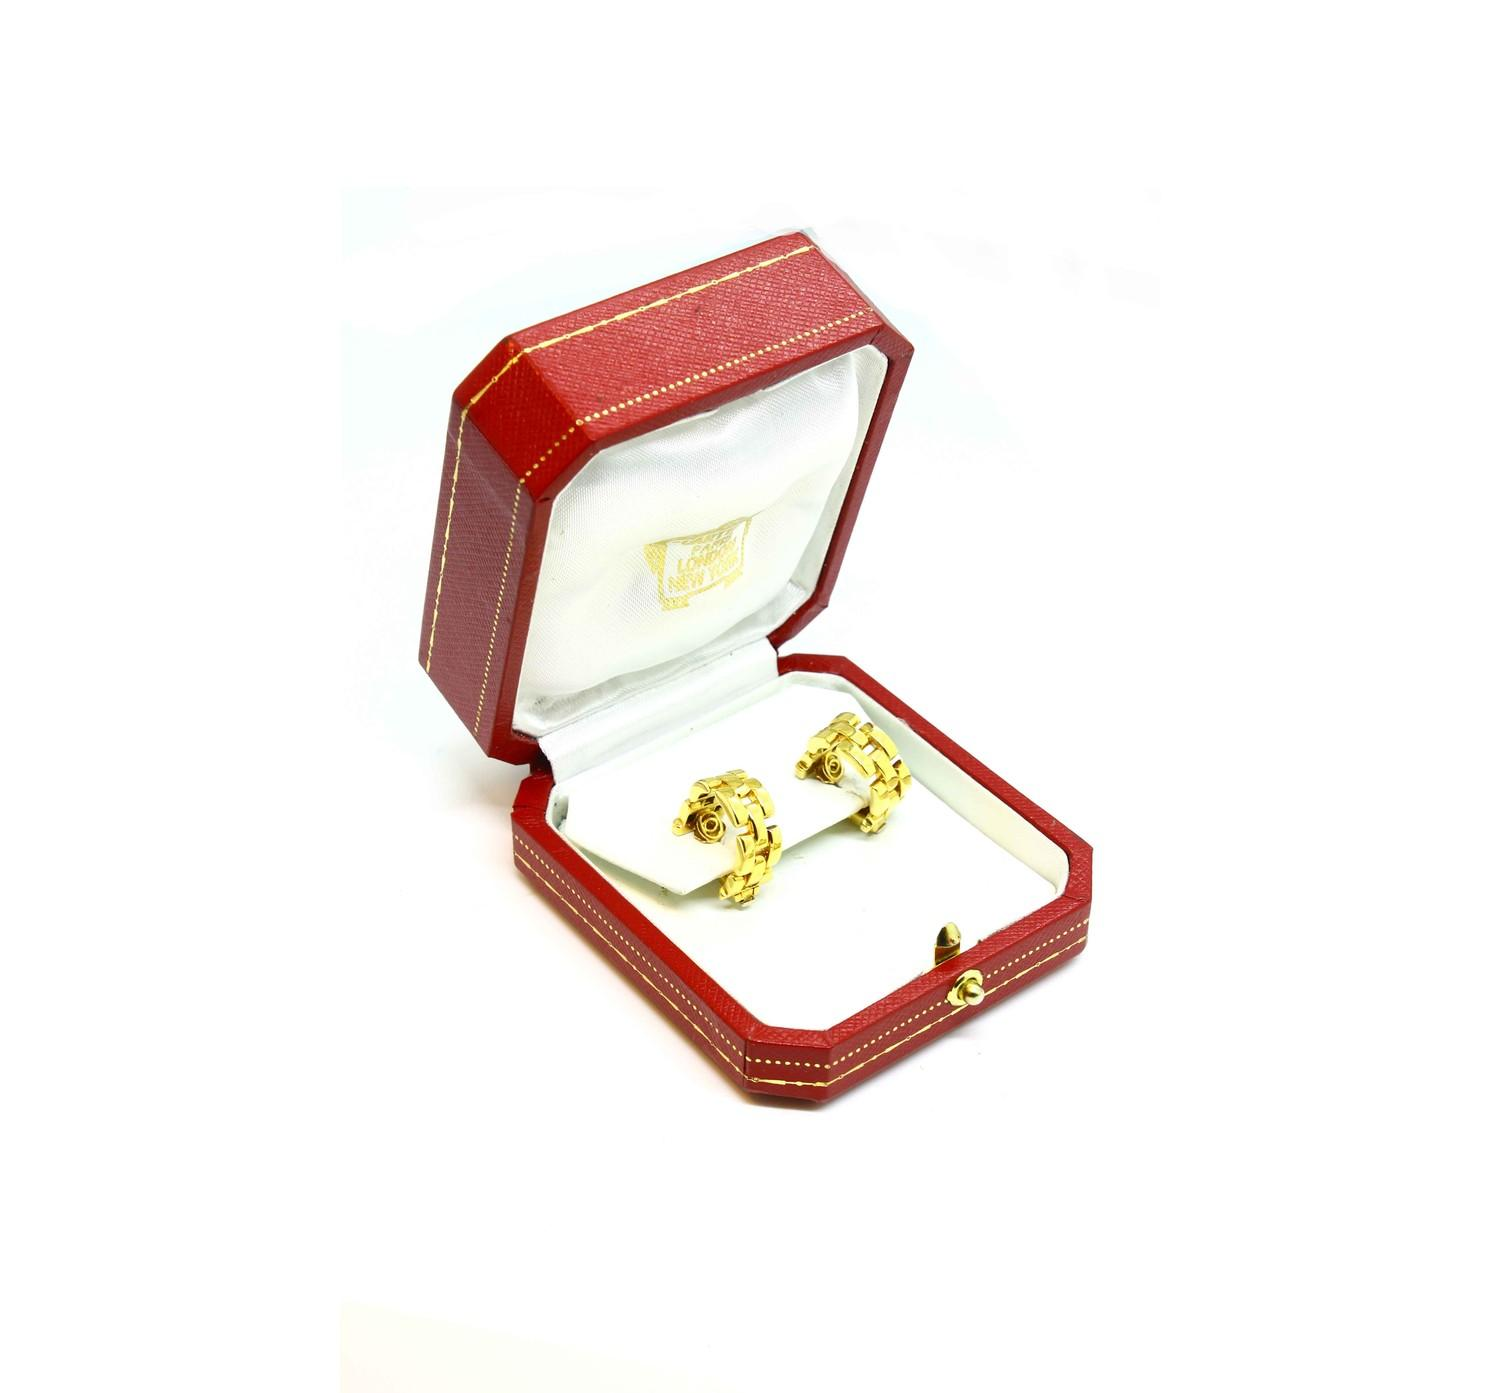 A pair of Cartier Panthere earrings mounted in 18ct gold. English. 1992. Signed and numbered with